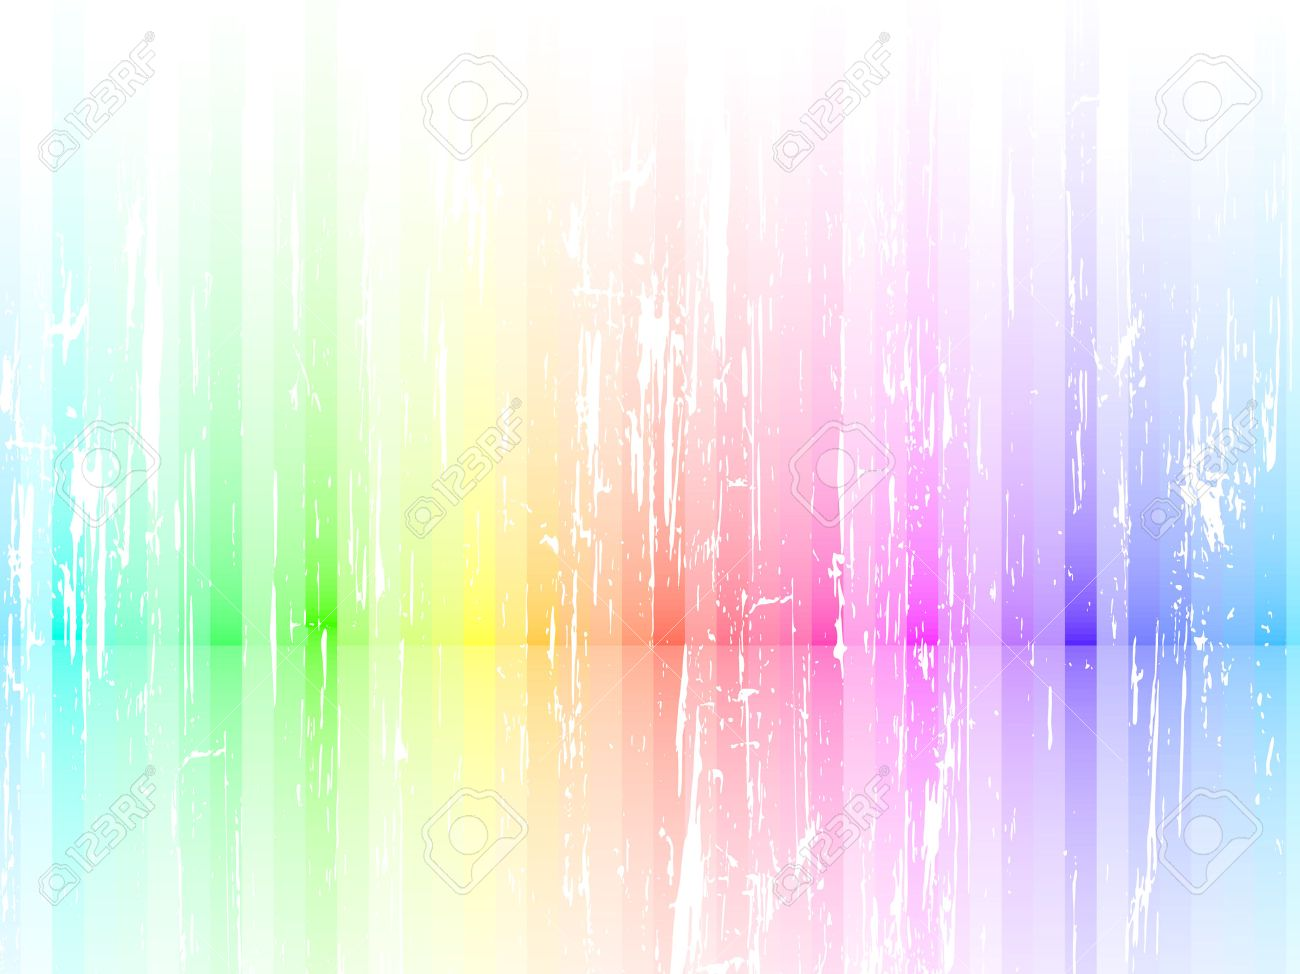 abstract grunge background, blur effect Stock Vector - 5692914